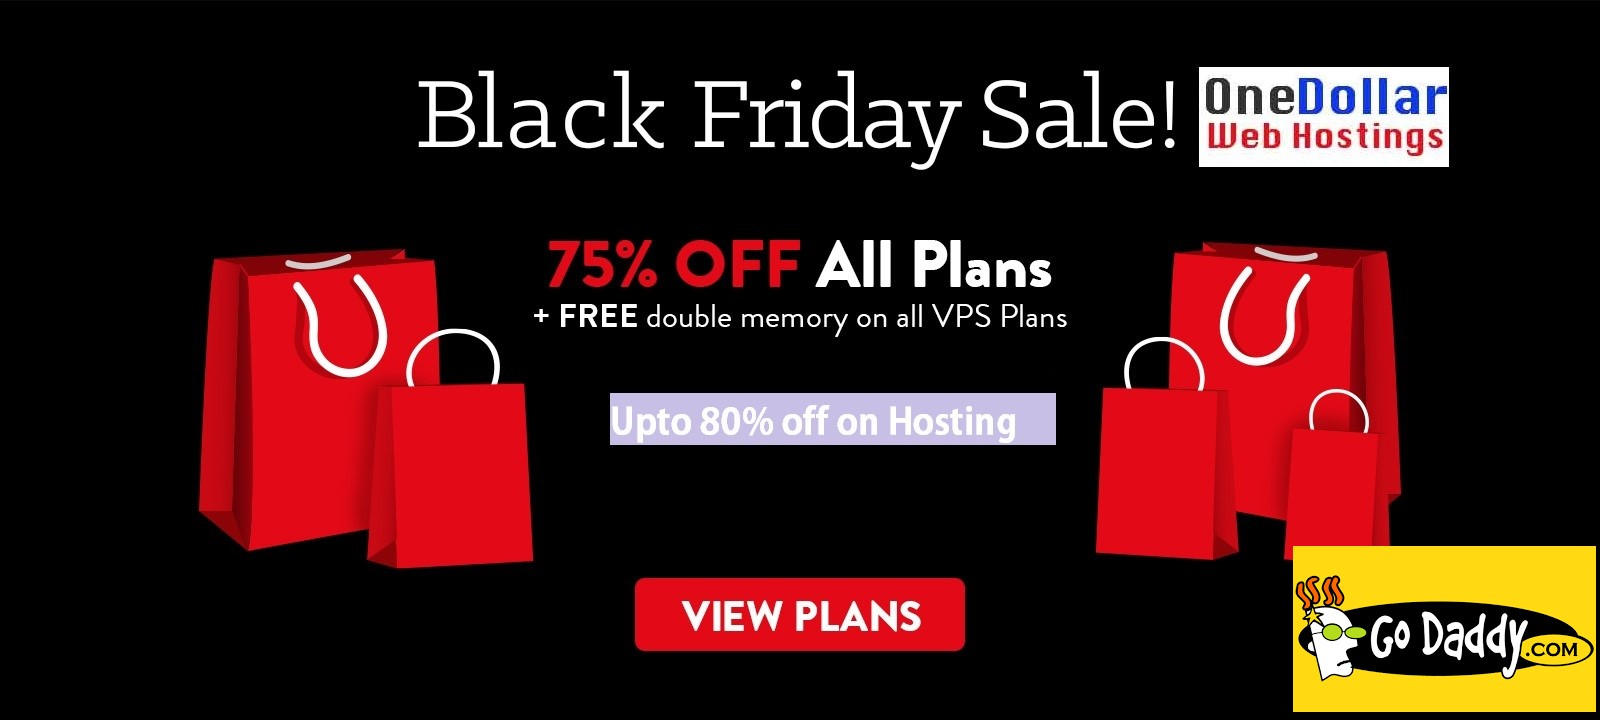 All plans upto 70% Off